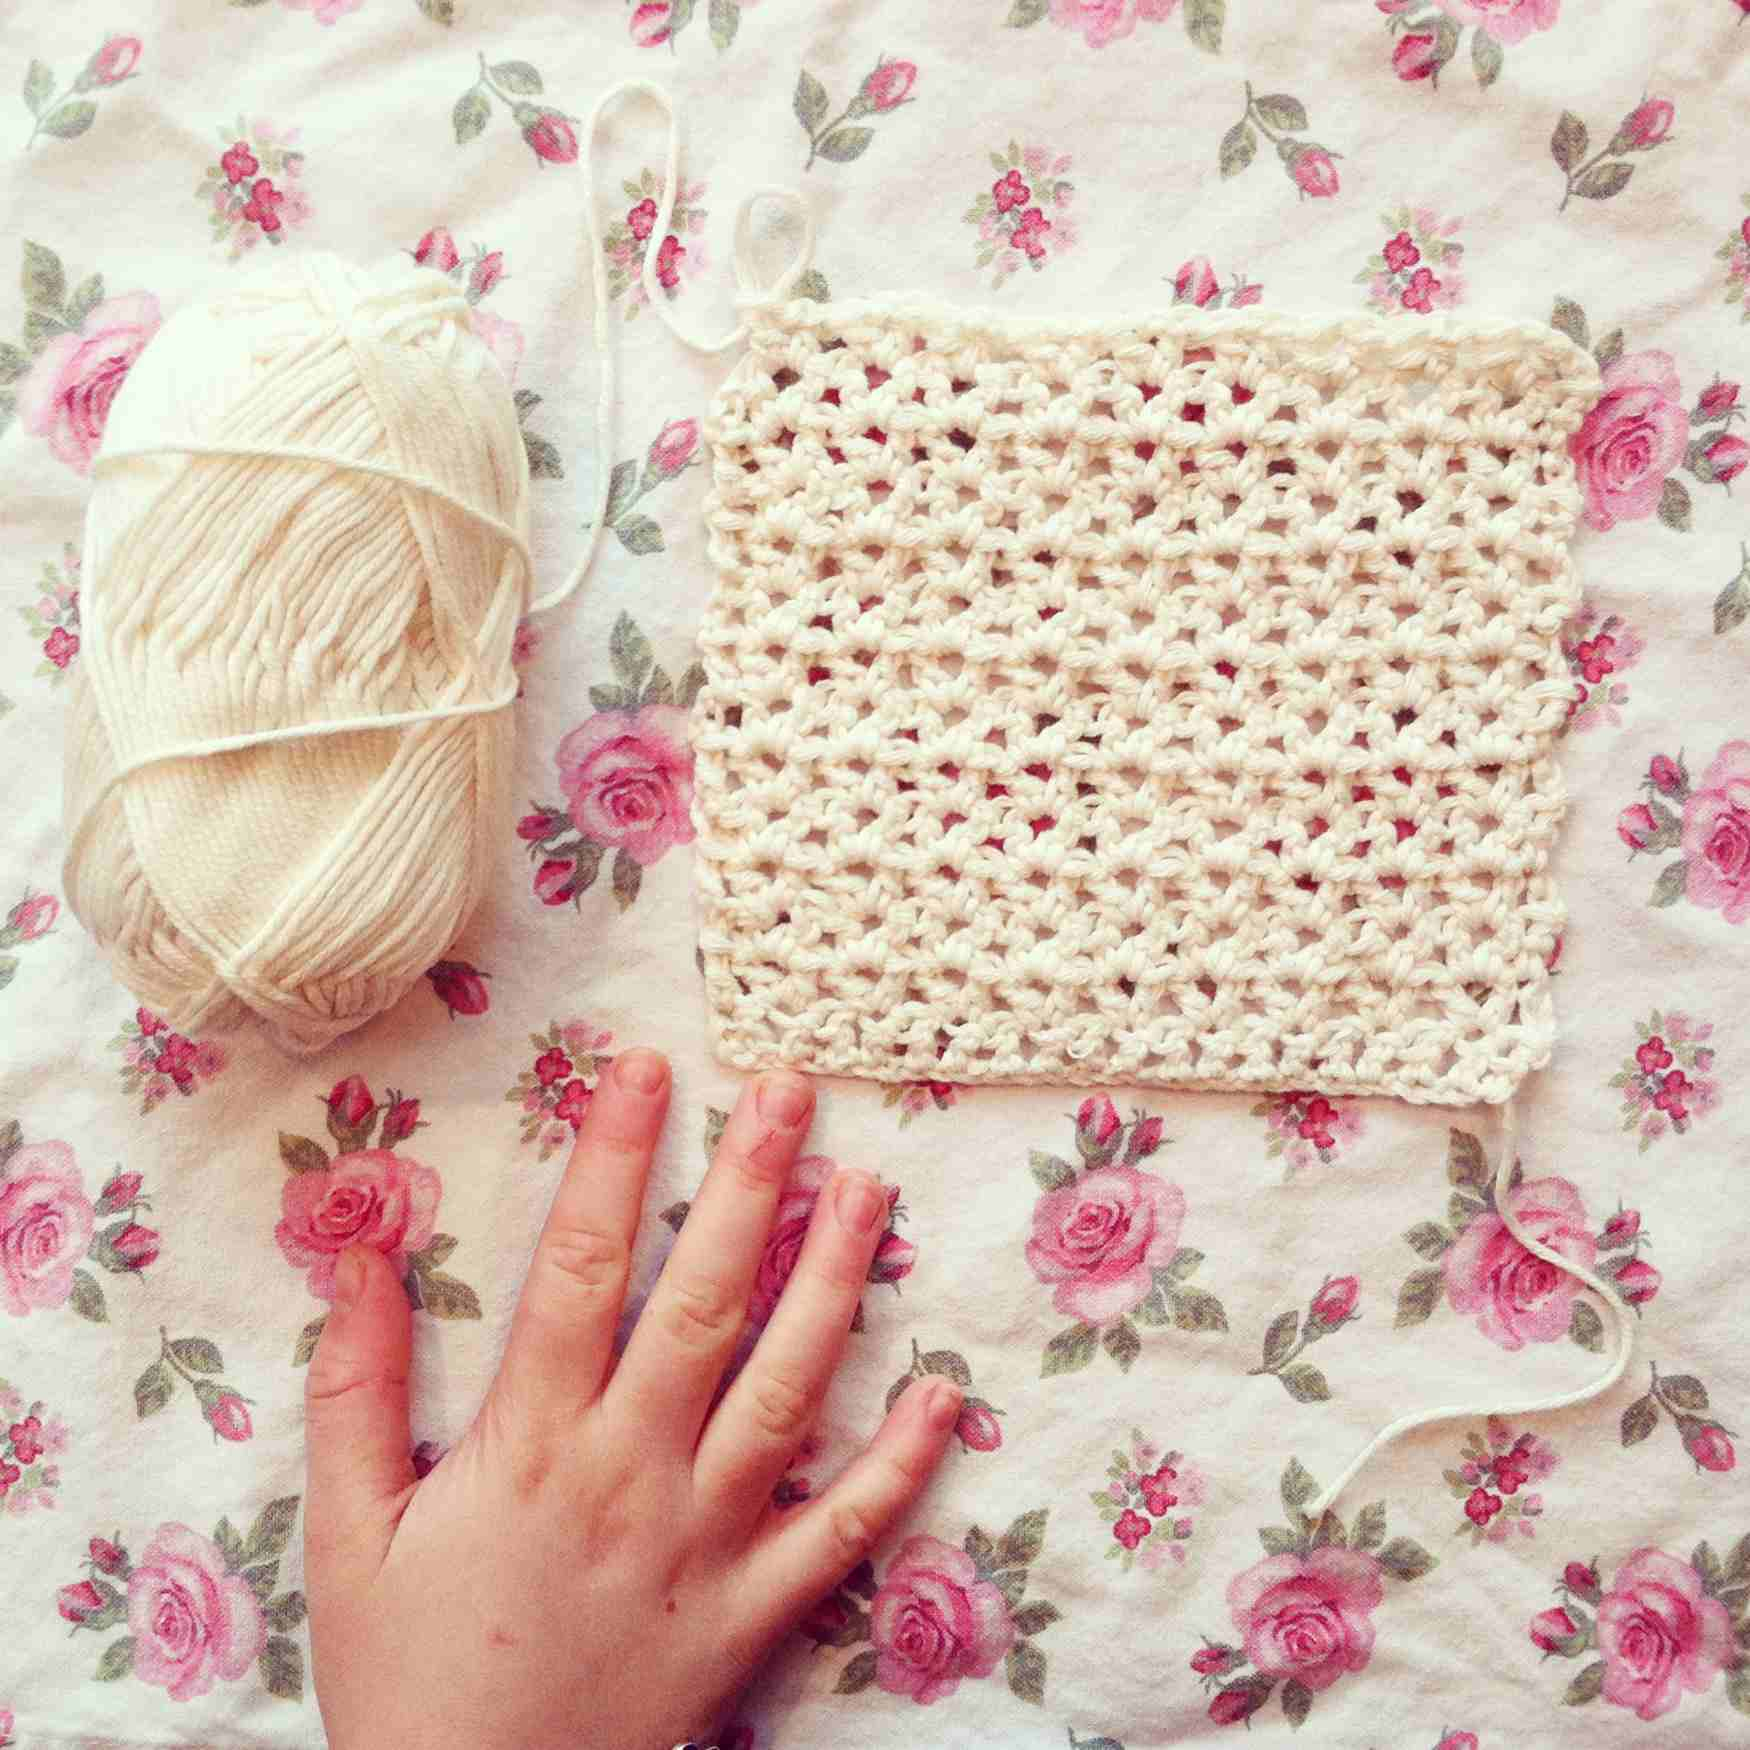 3 Magnificent Ideas of the Free Crochet Rose Afghan Pattern 35 Free Crochet Afghan Square Patterns